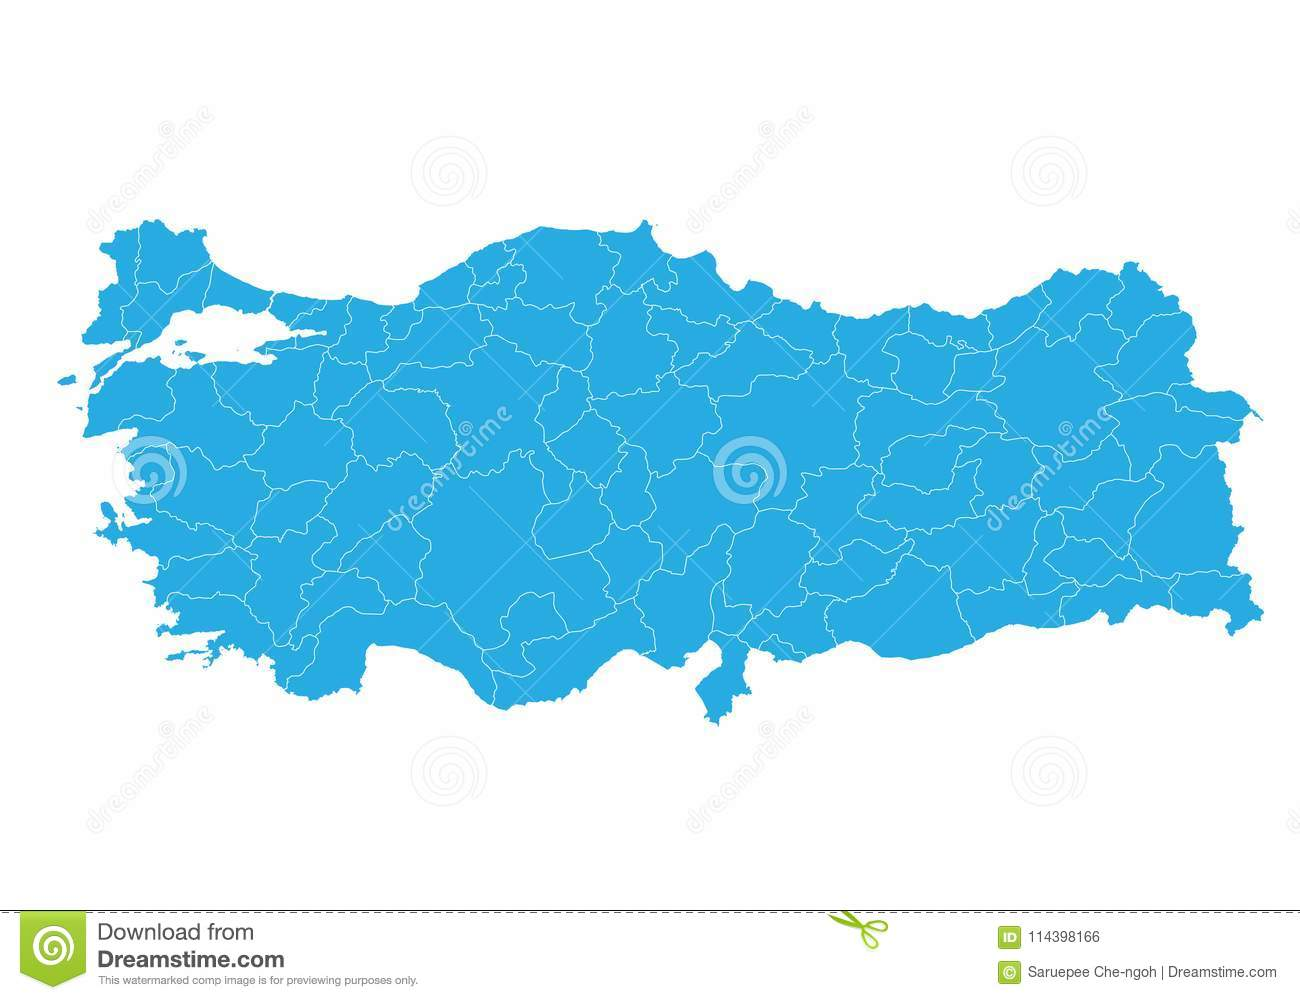 Map Of Turkey. High Detailed Vector Map - Turkey. Stock Vector ...